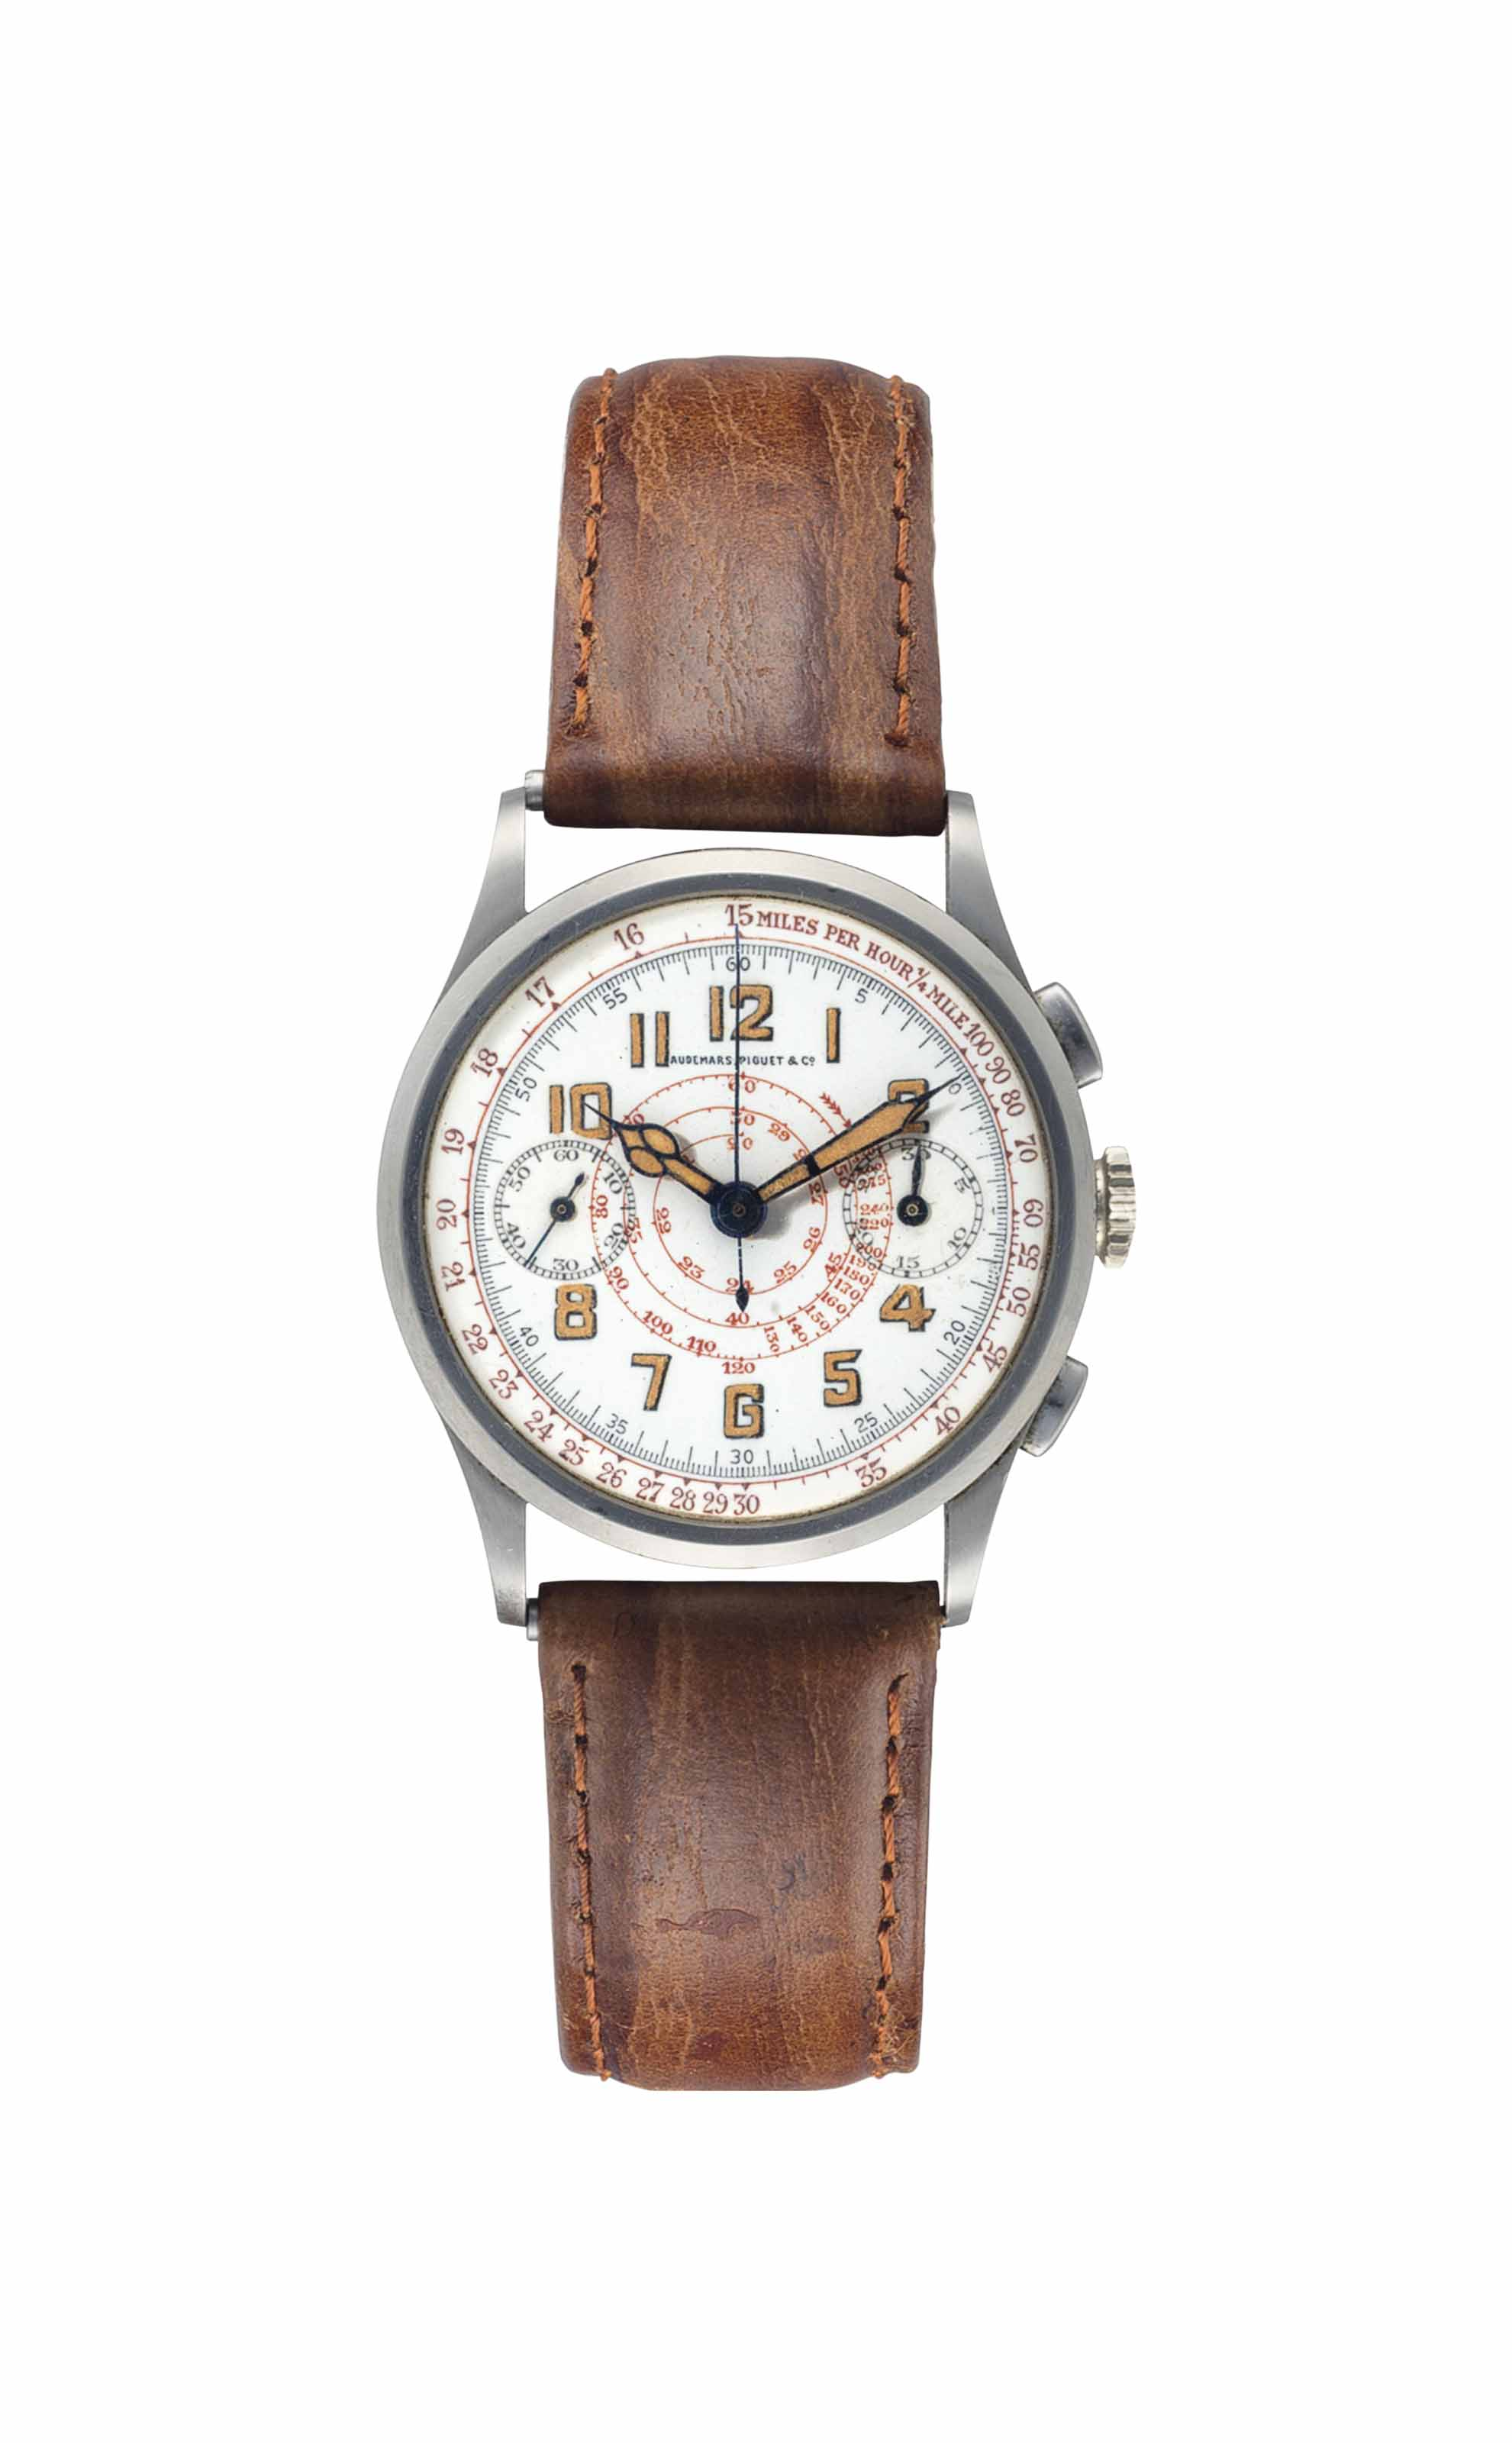 Audemars Piguet. An Extremely Rare Stainless Steel Chronograph Wristwatch with Central Spiraled Tachymeter Scale